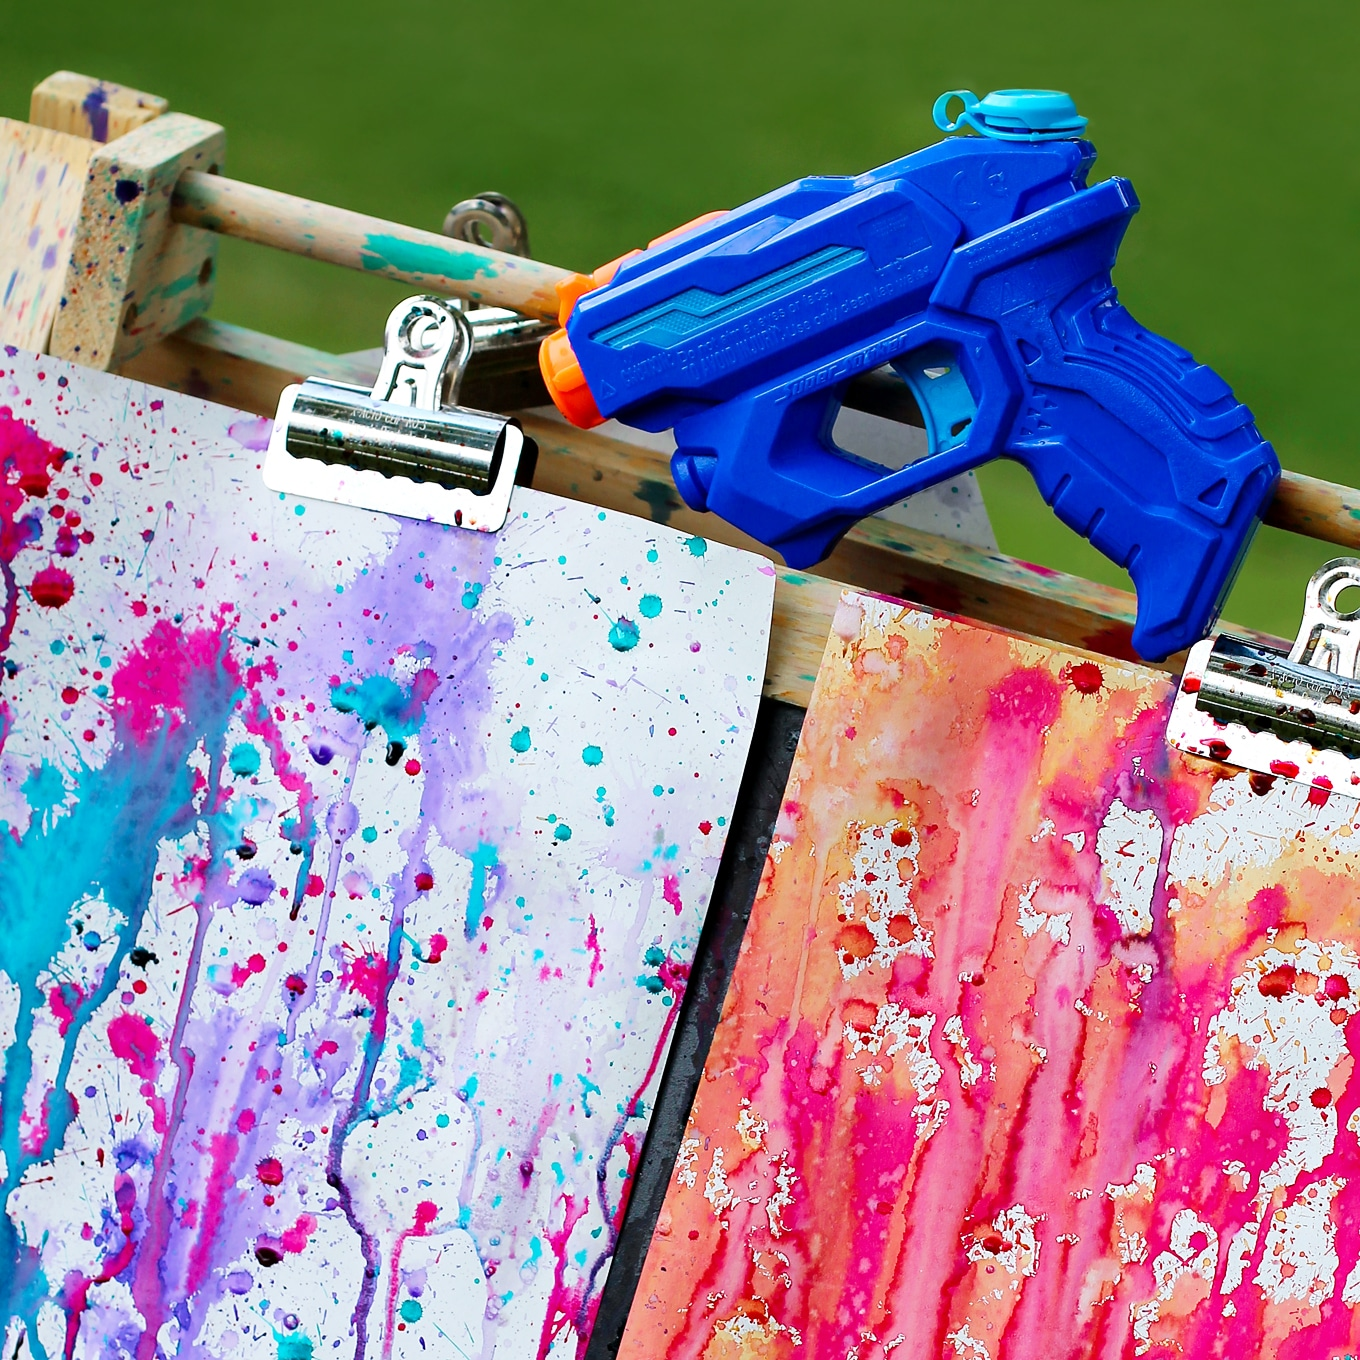 Colorful gun painting | DIY Kids Crafts You Can Make In Under An Hour